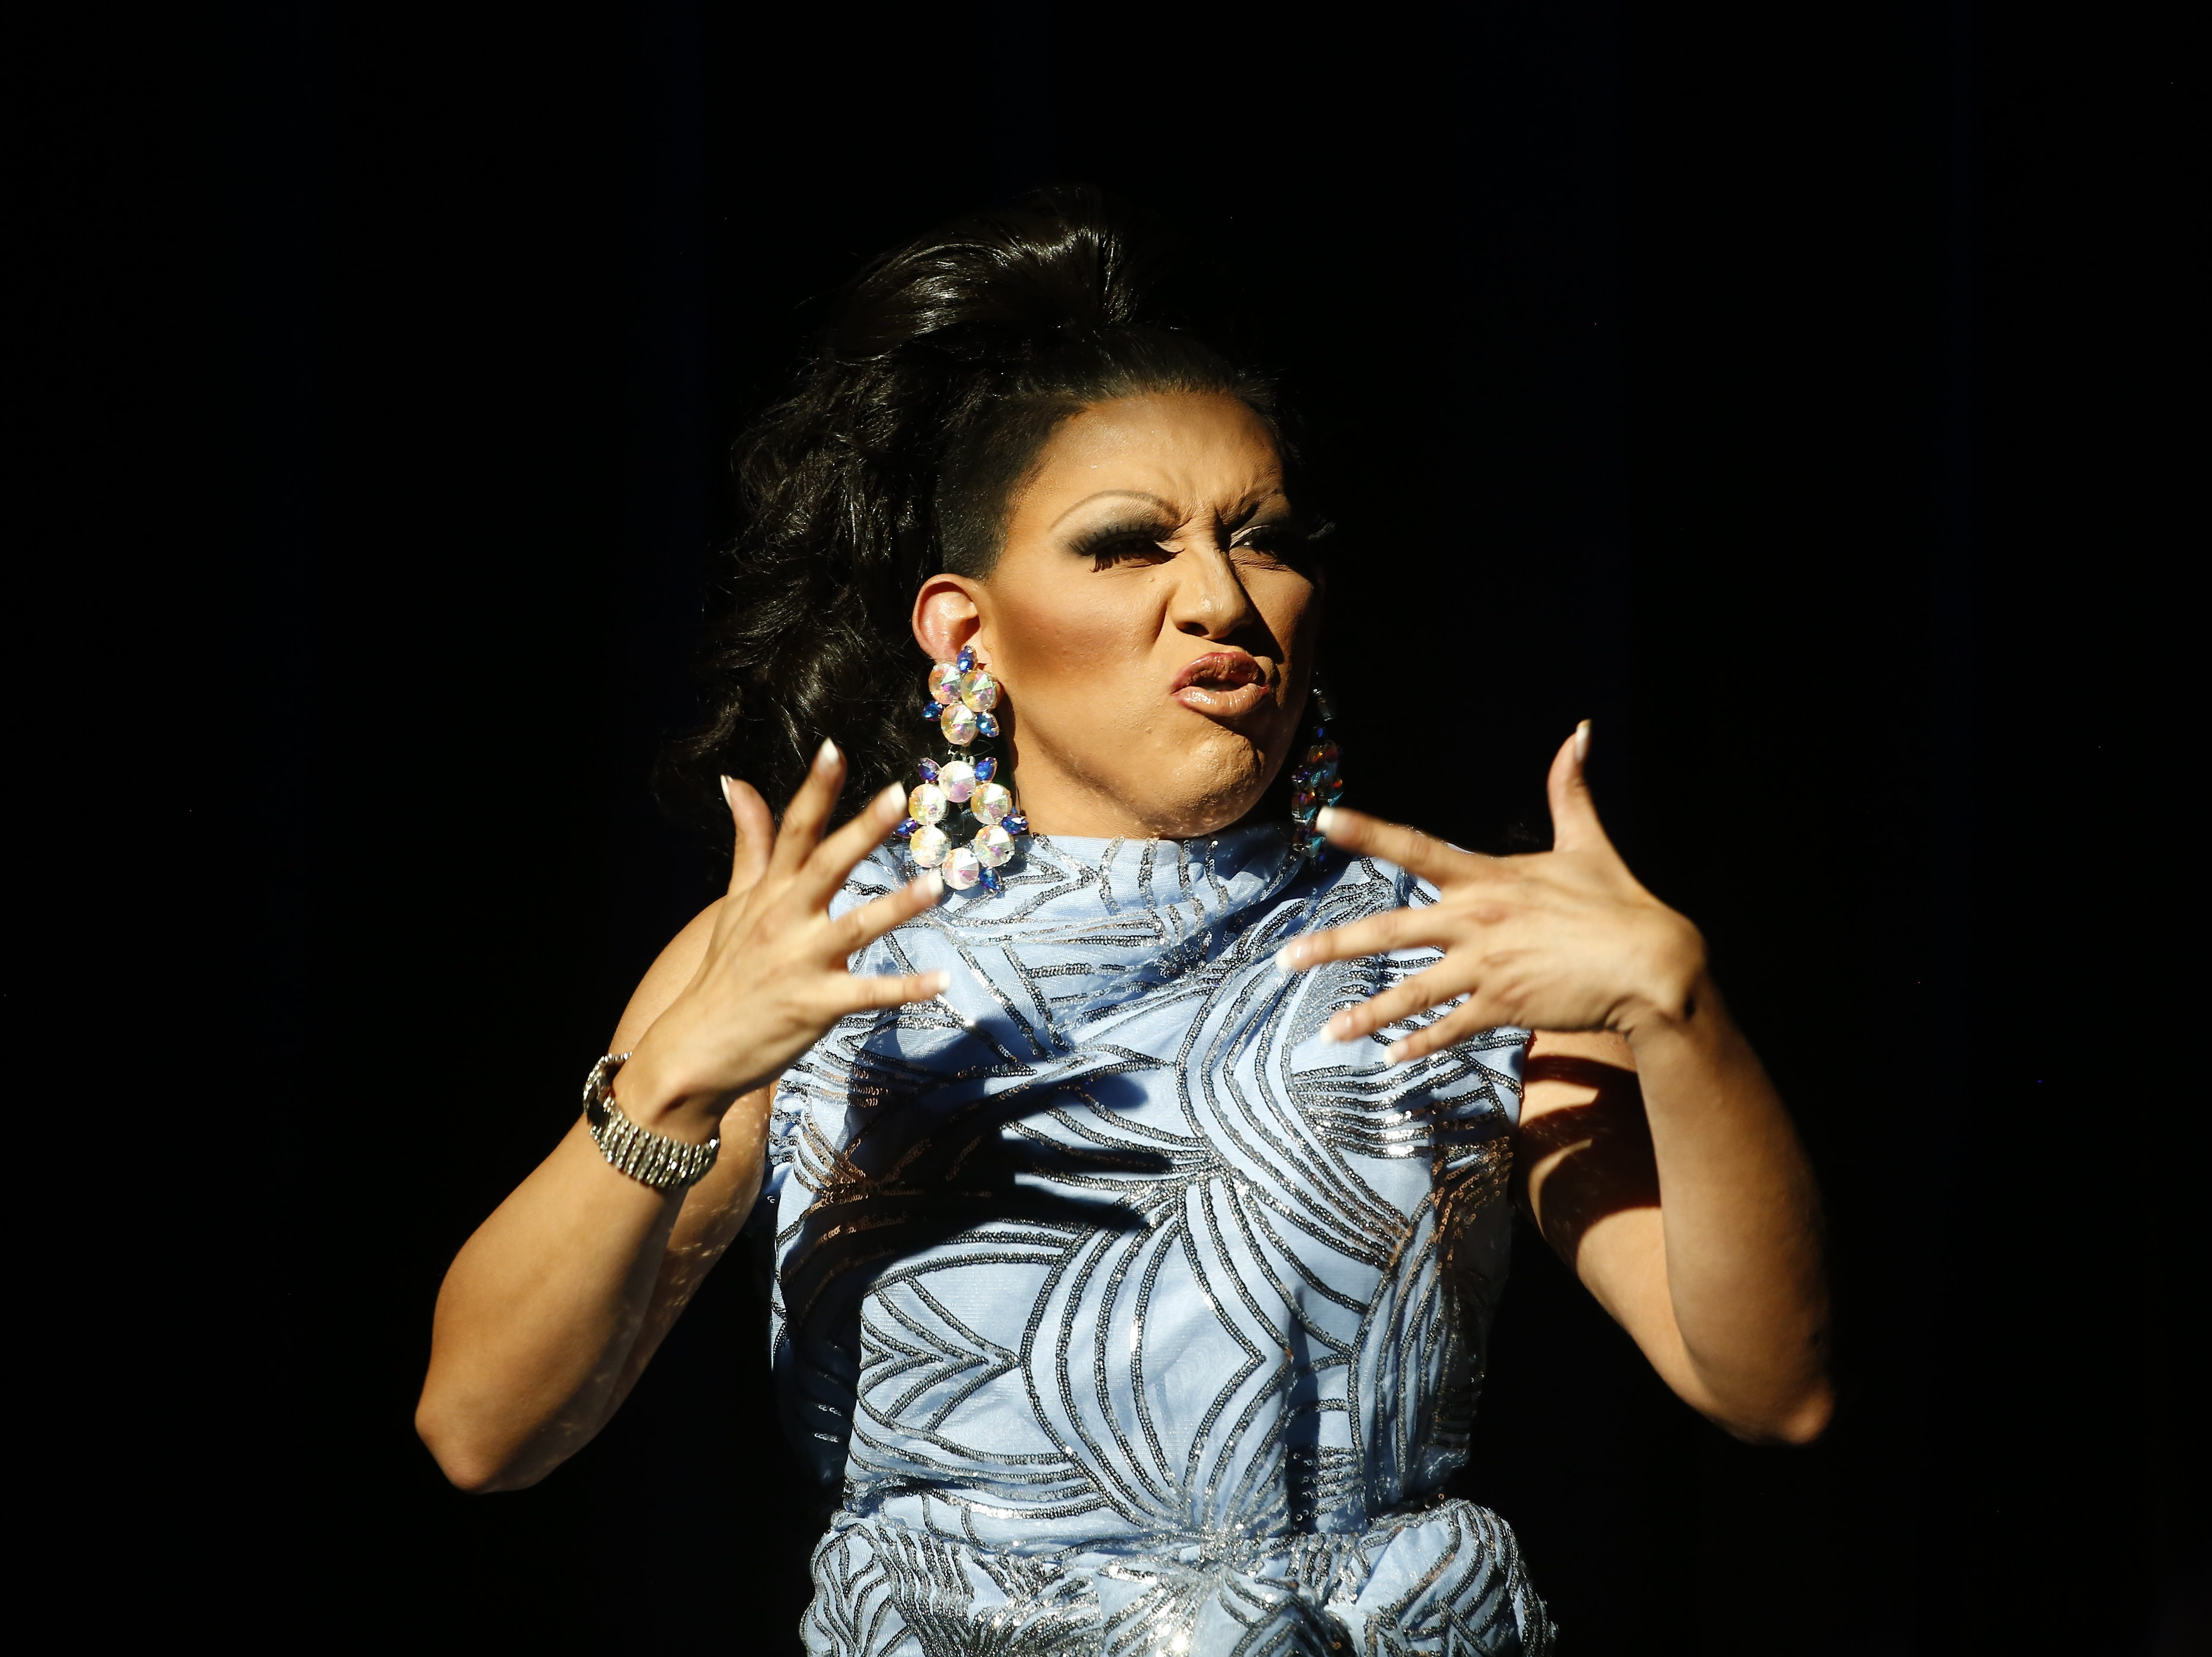 Miss Gay Queen of the Desert America Sicarya performs during the Miss Gay Arizona America pageant 2019 at Tempe Center for the Arts on May 11, 2019.